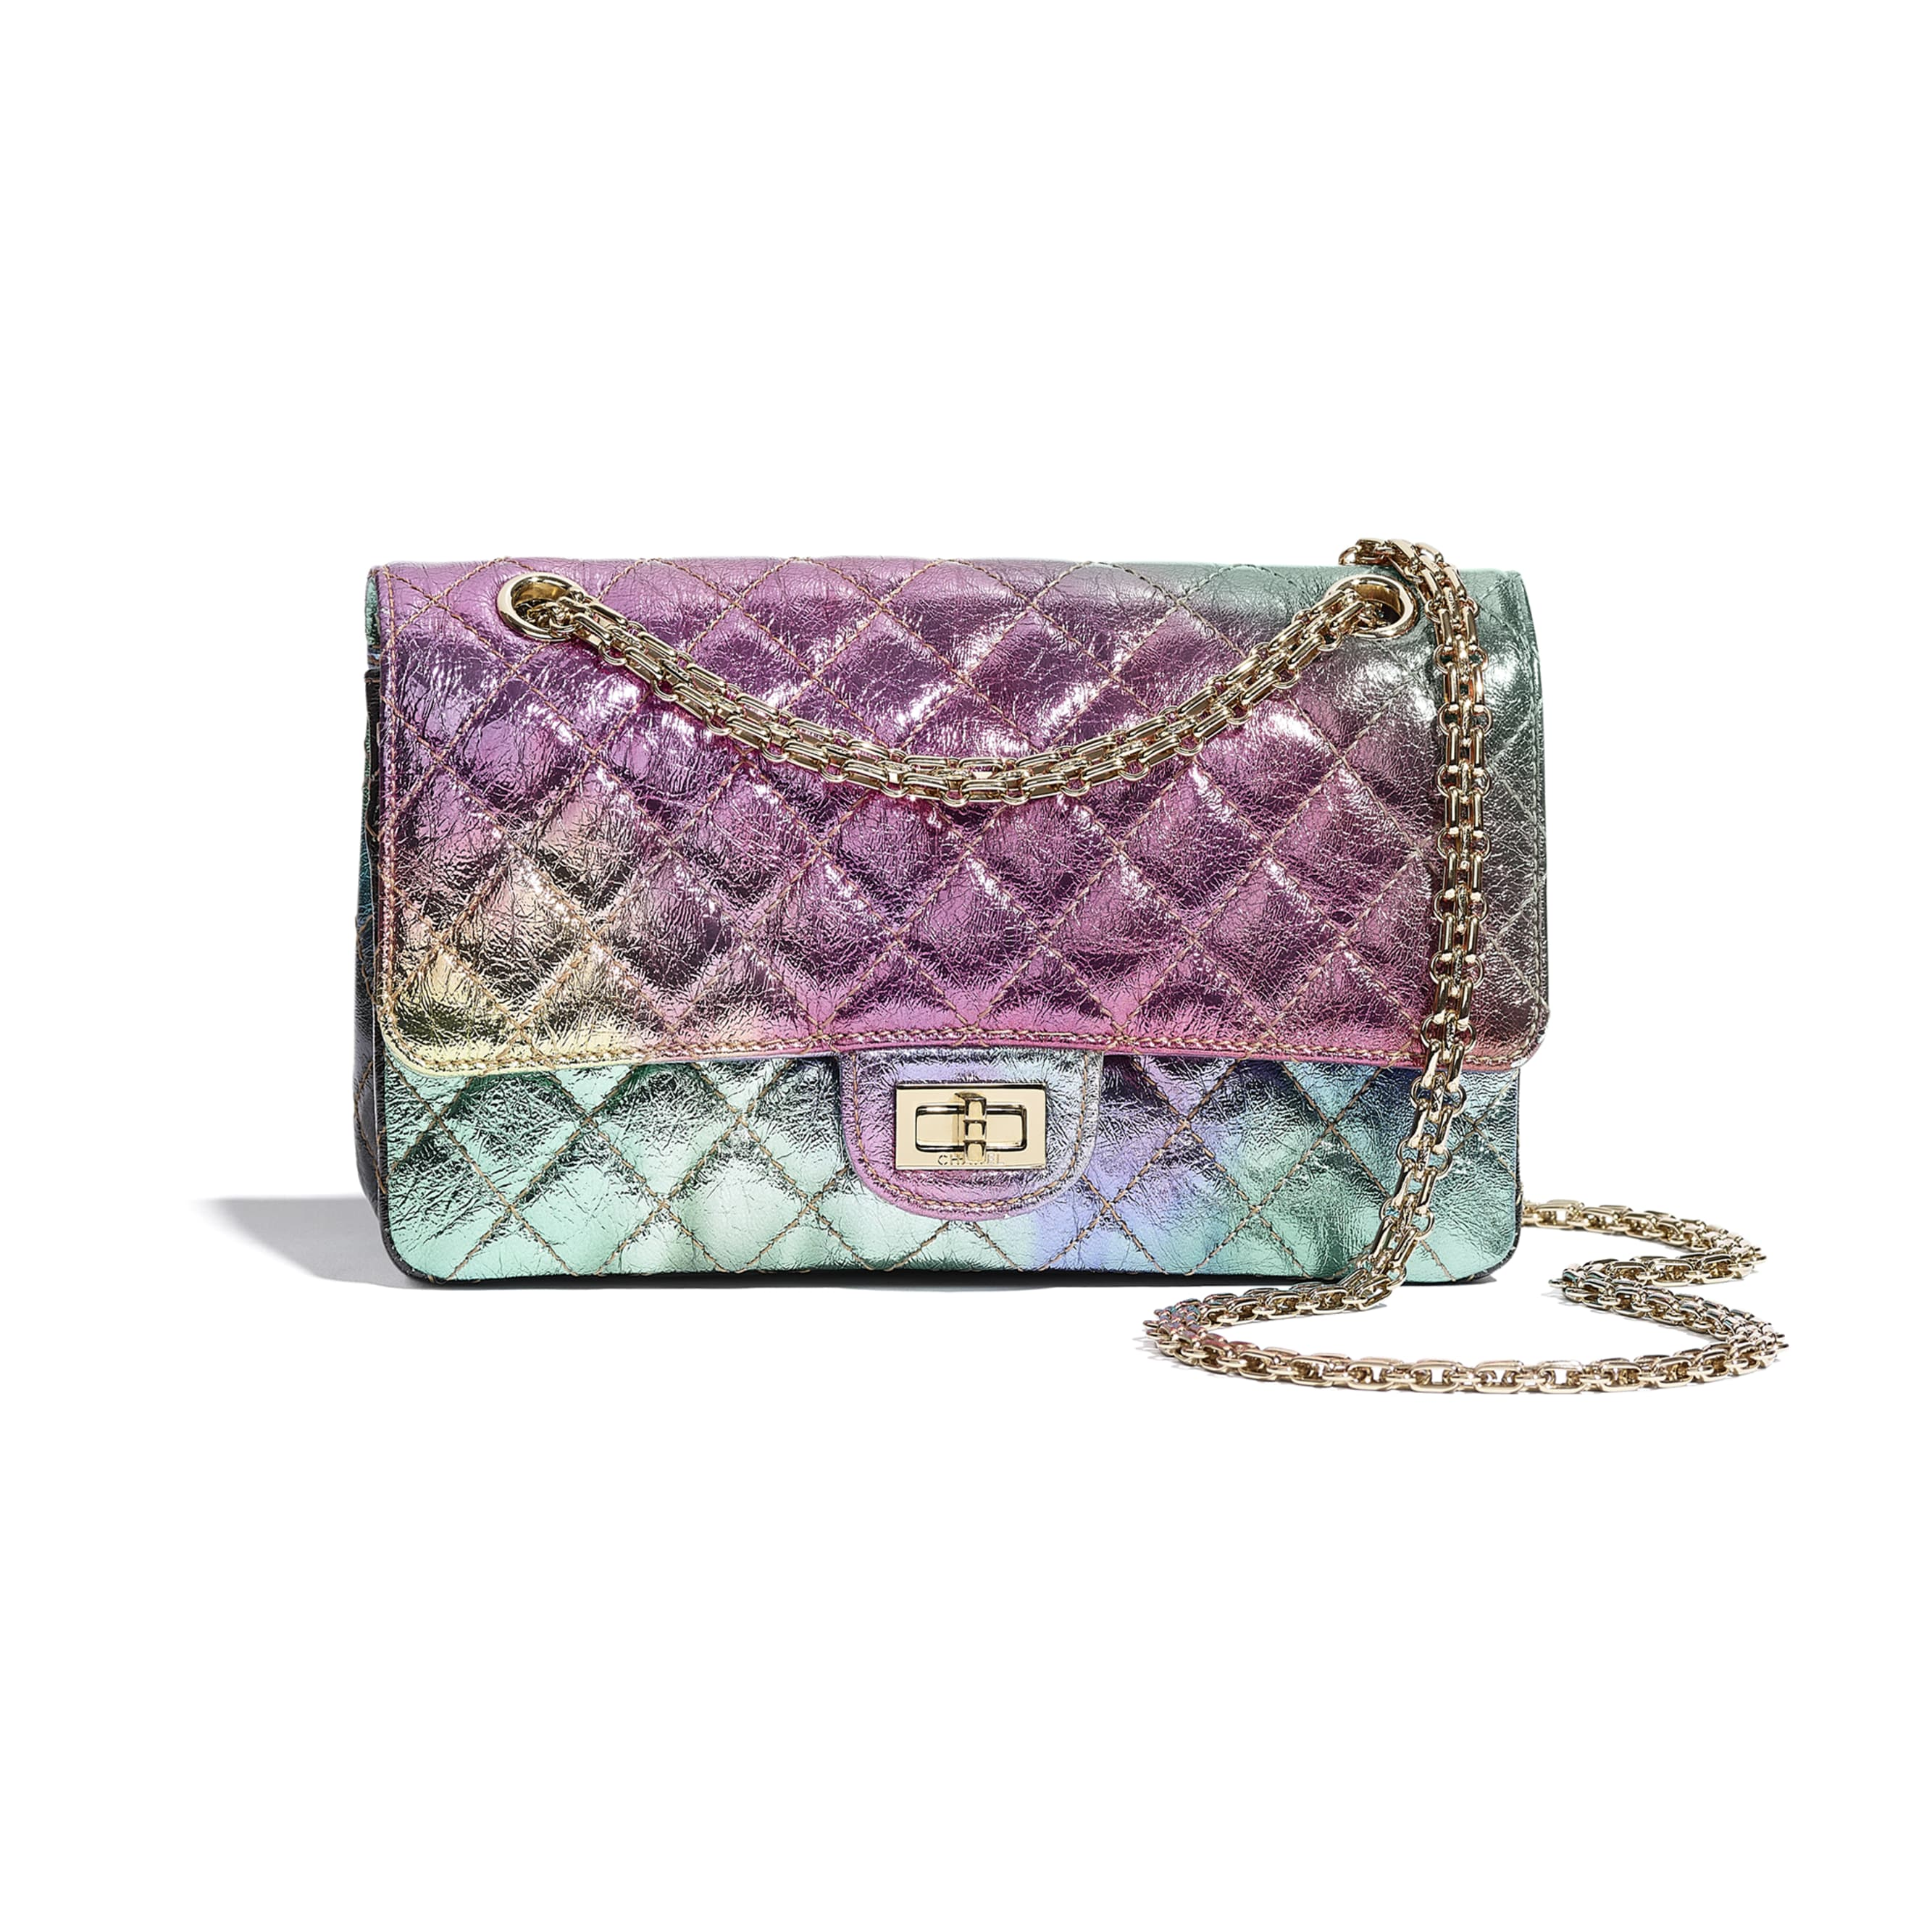 2.55 Handbag - Multicolour - Metallic Goatskin & Gold-Tone Metal - CHANEL - Default view - see standard sized version